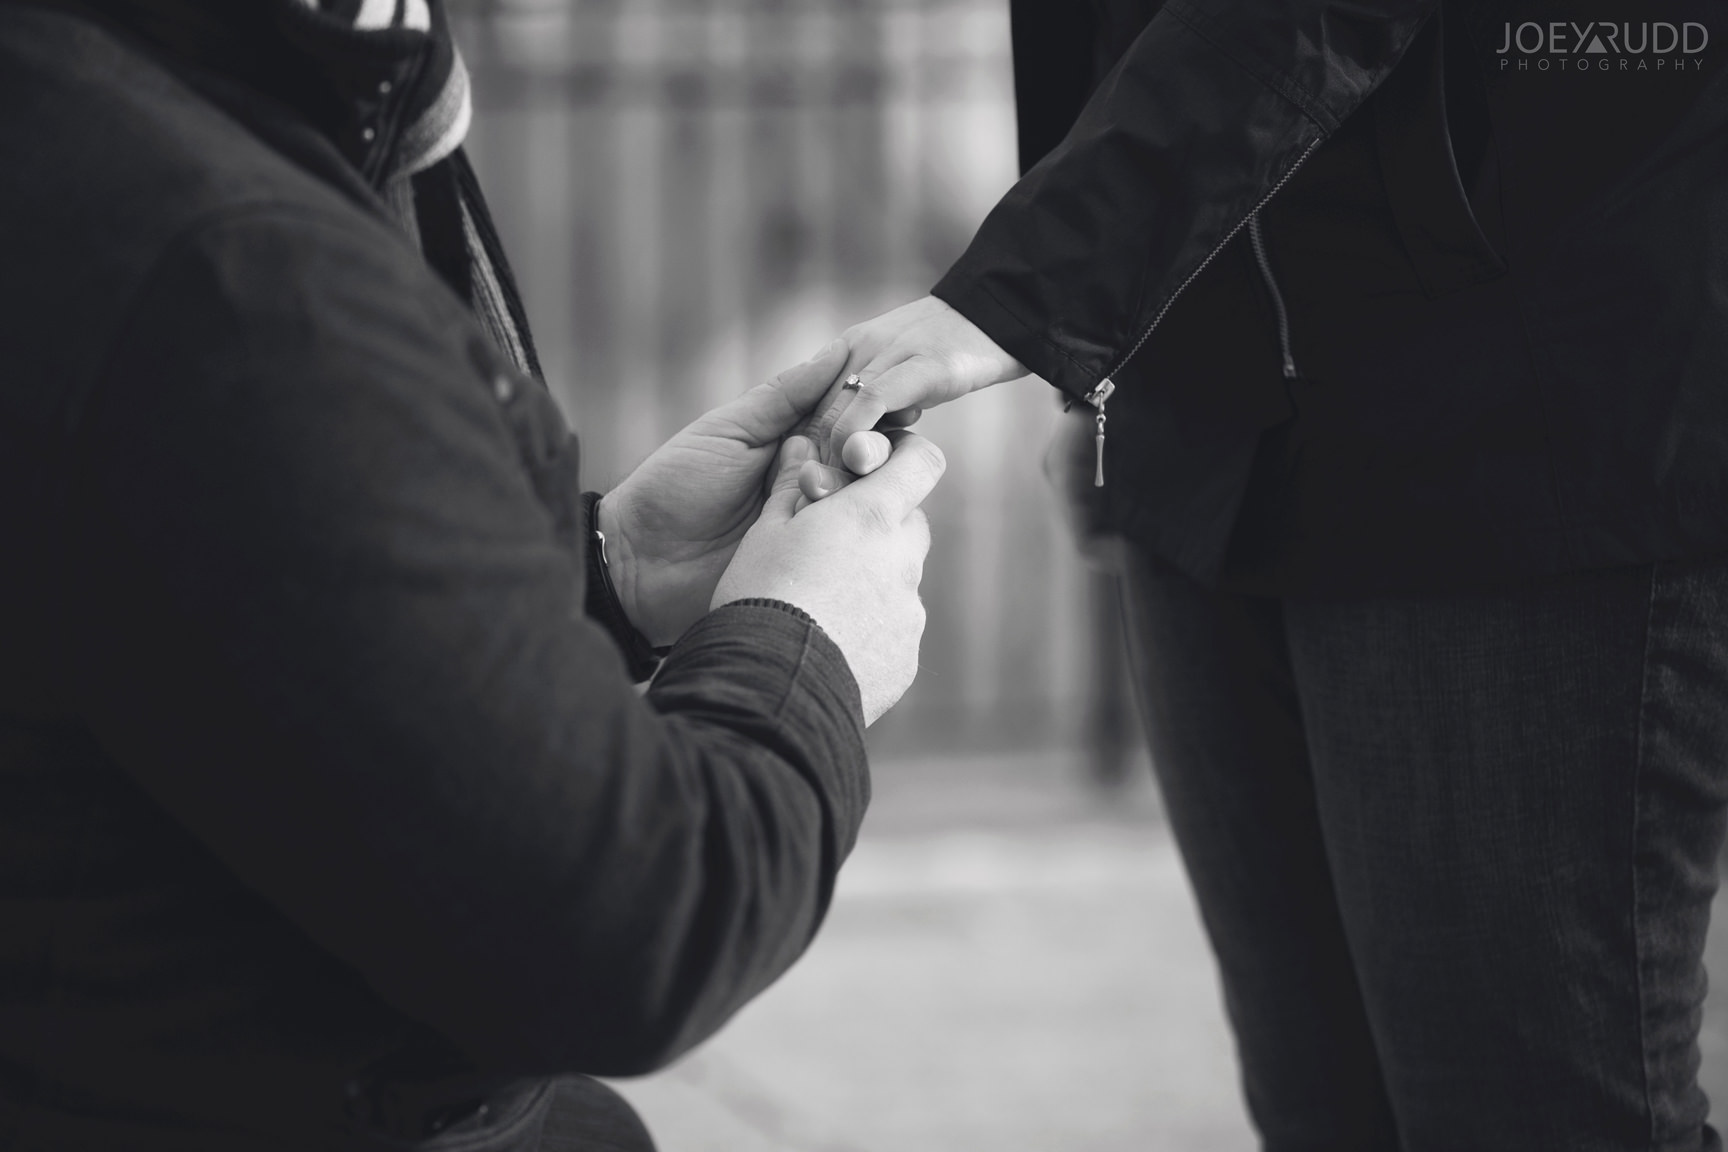 winter engagement at major's hill park by ottawa wedding photographer joey rudd photography ring